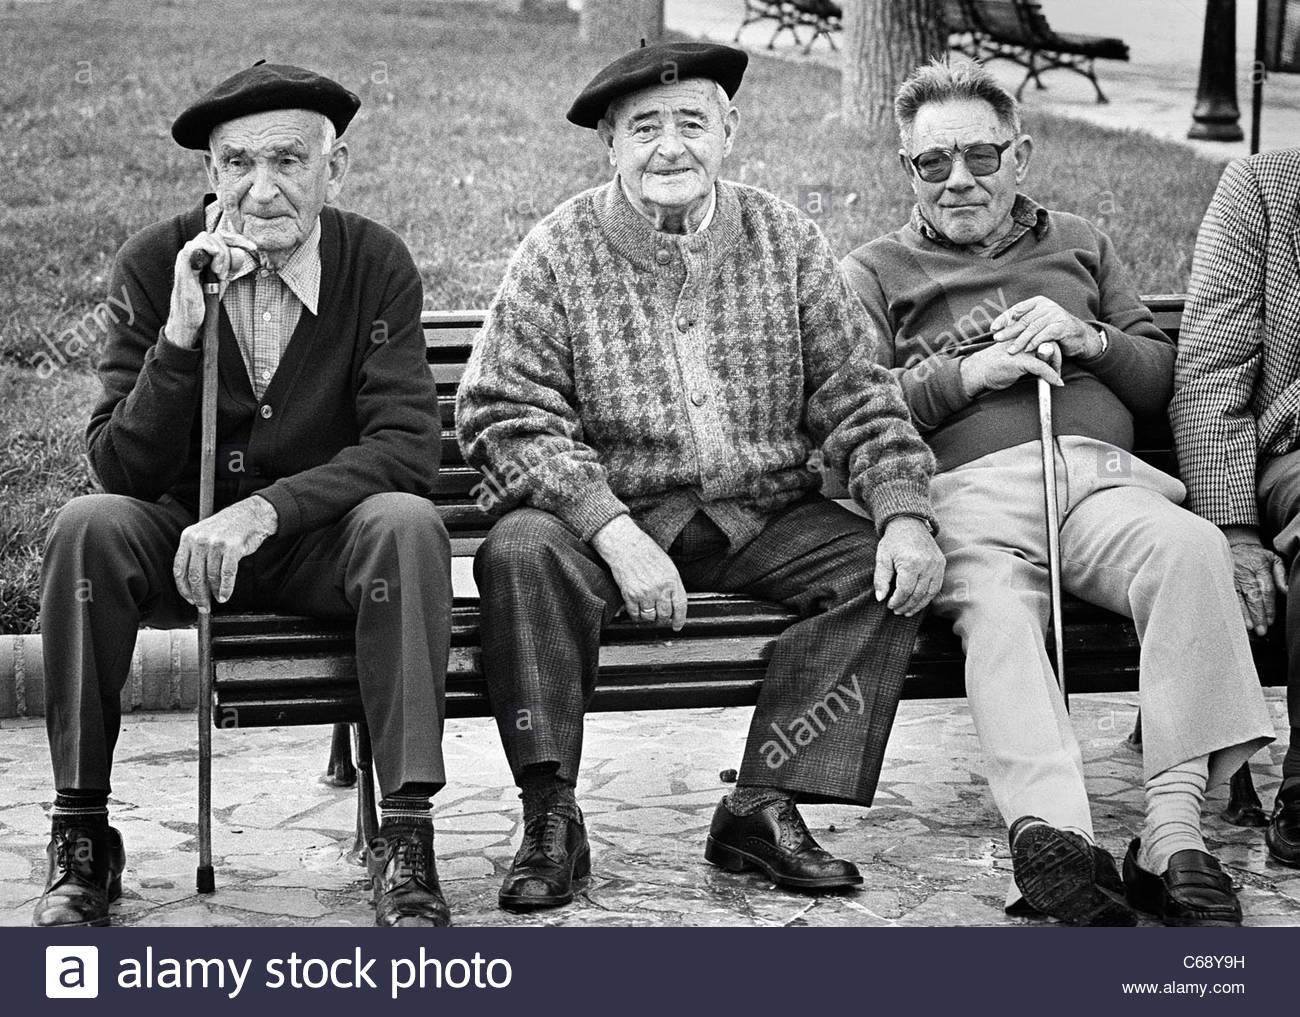 three-old-men-two-with-traditional-basque-berets-sit-on-a-park-bench-C68Y9H